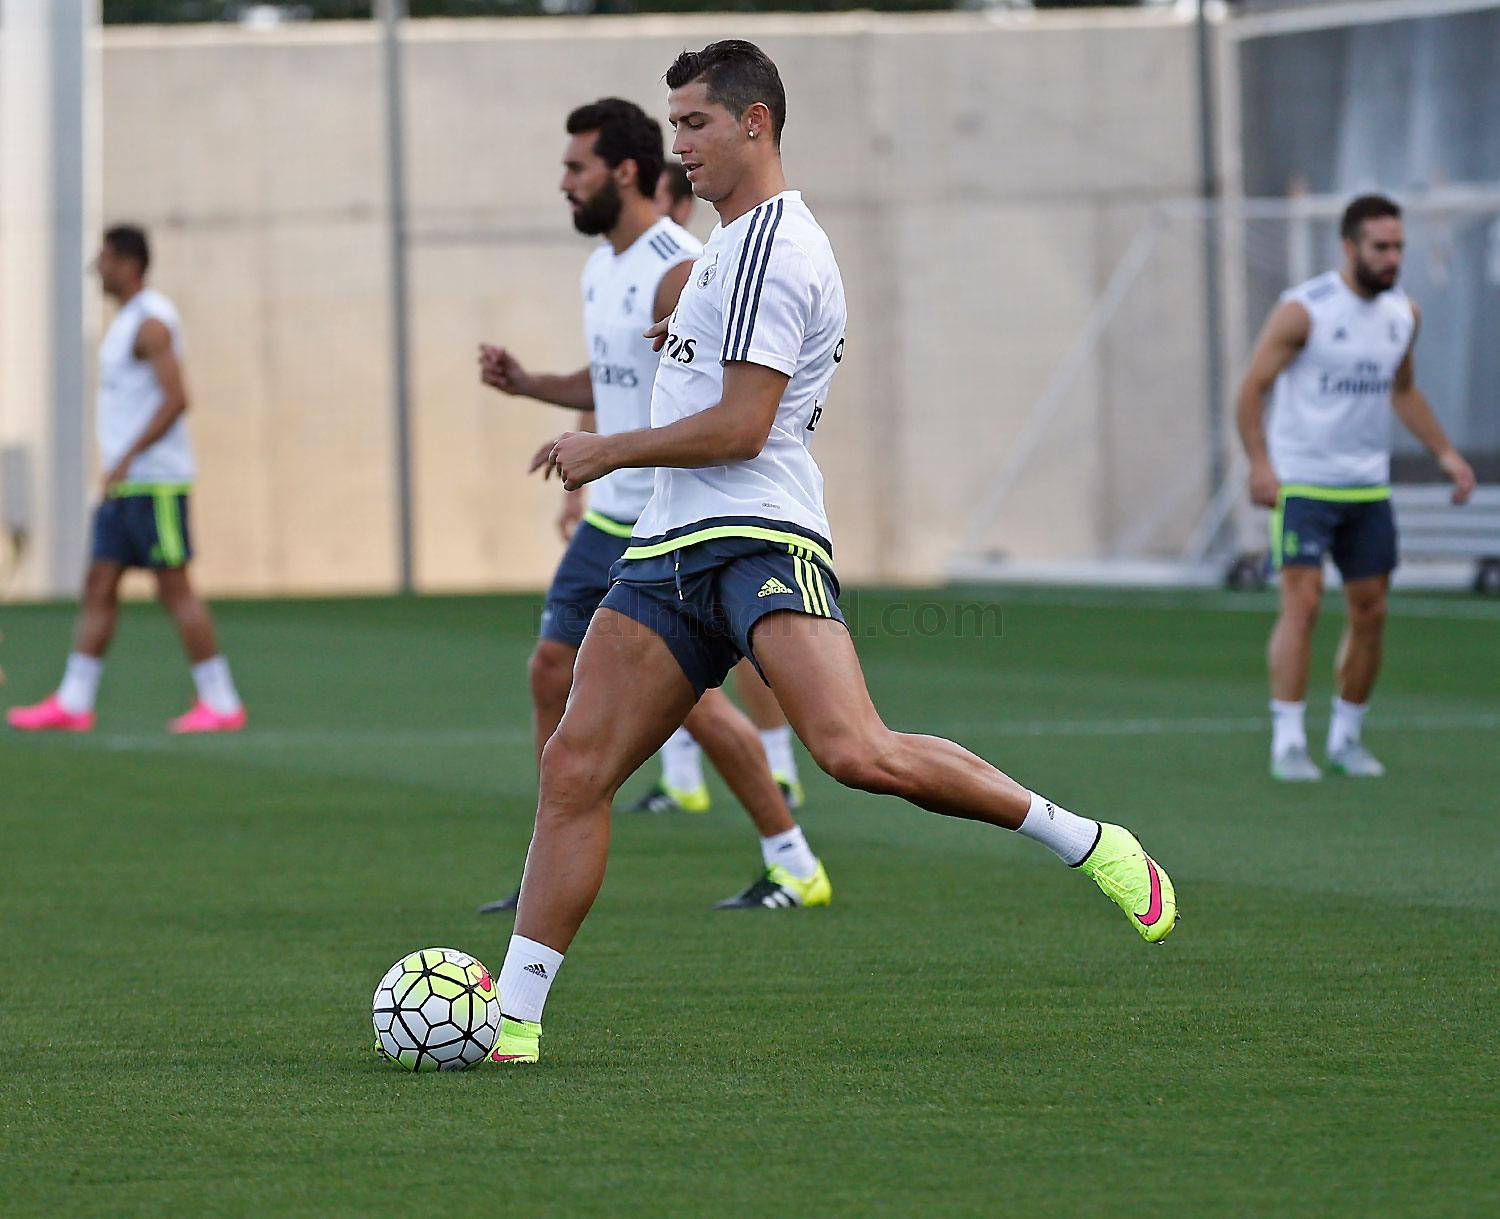 Real Madrid - Entrenamiento del Real Madrid - 03-08-2015